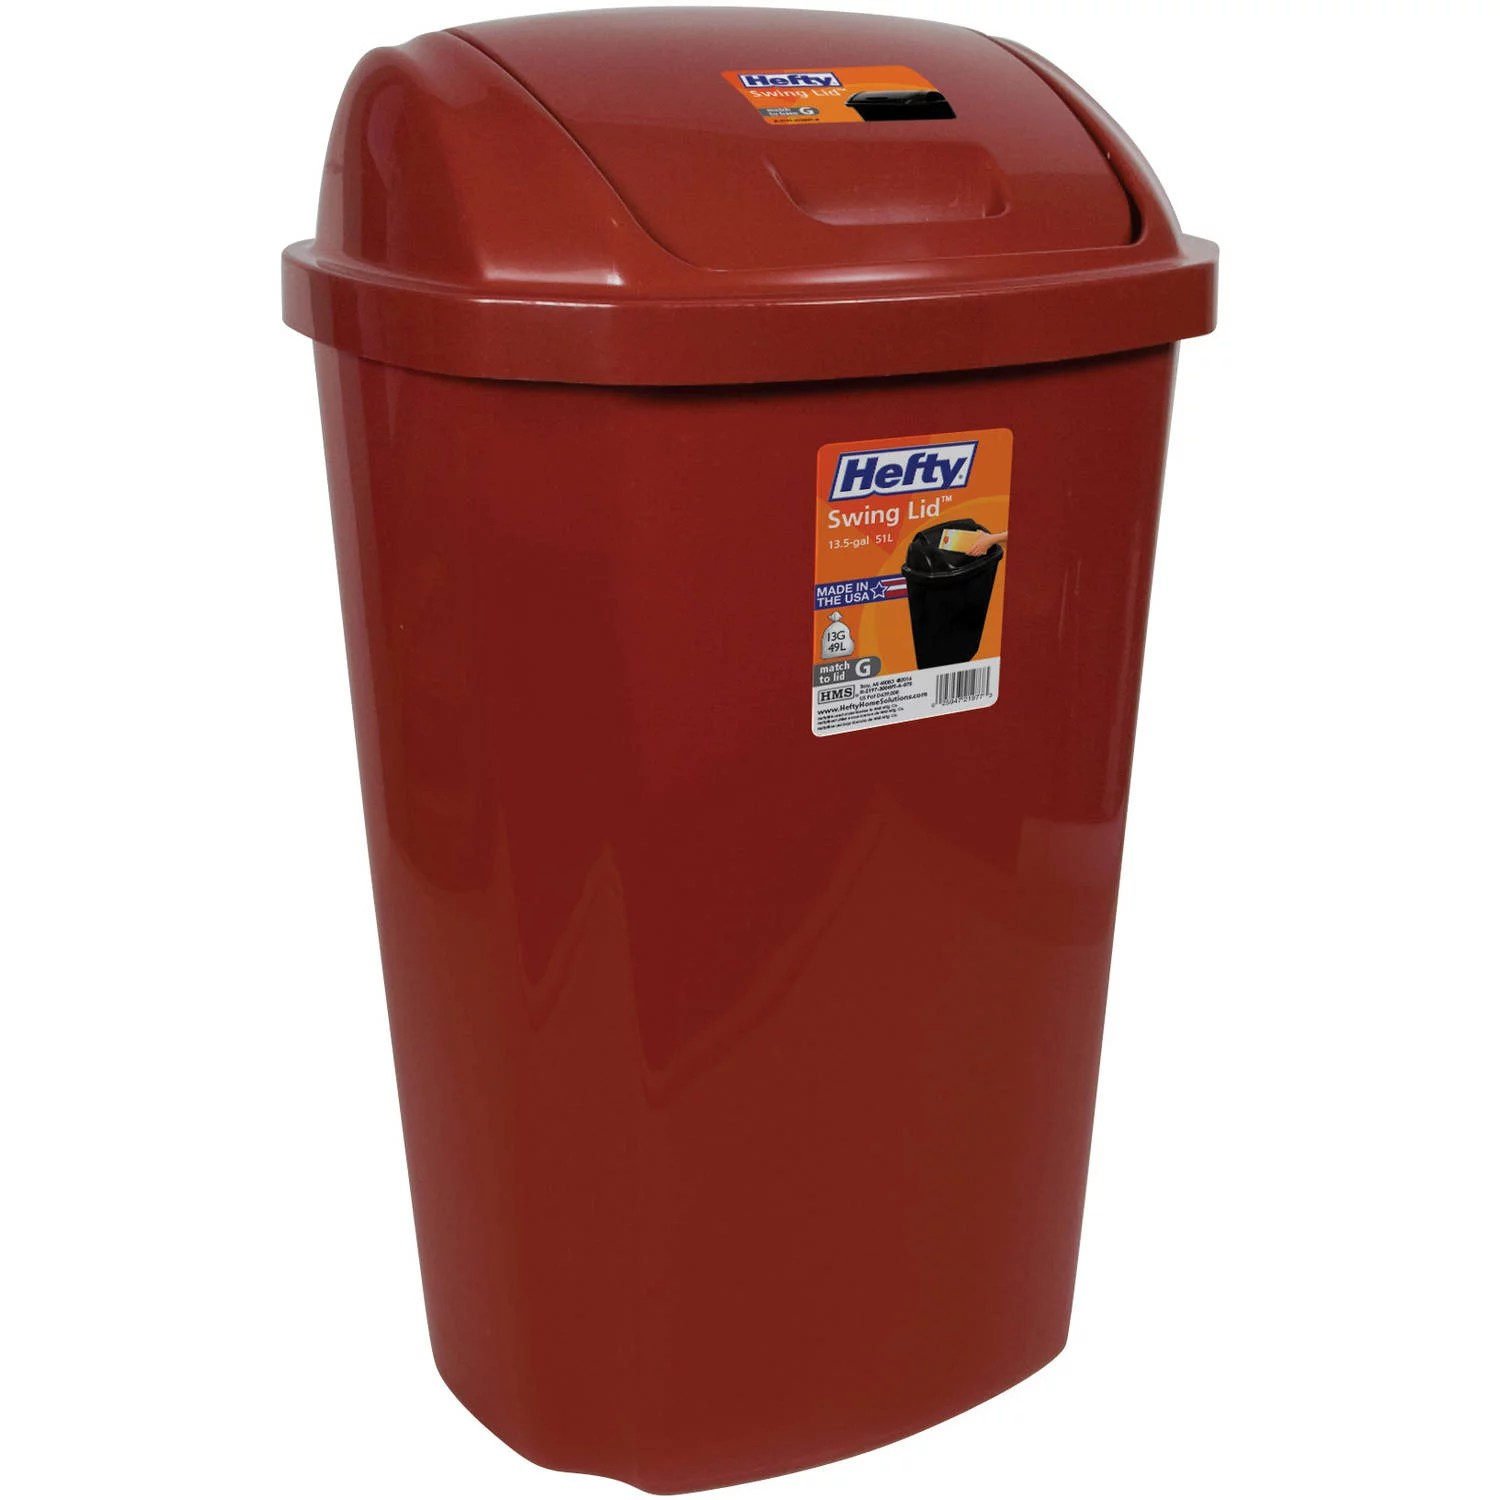 Trash Cans For Kitchen Kitchen Trash Can 13 5 Gallon Hefty Swing Lid Red Waste